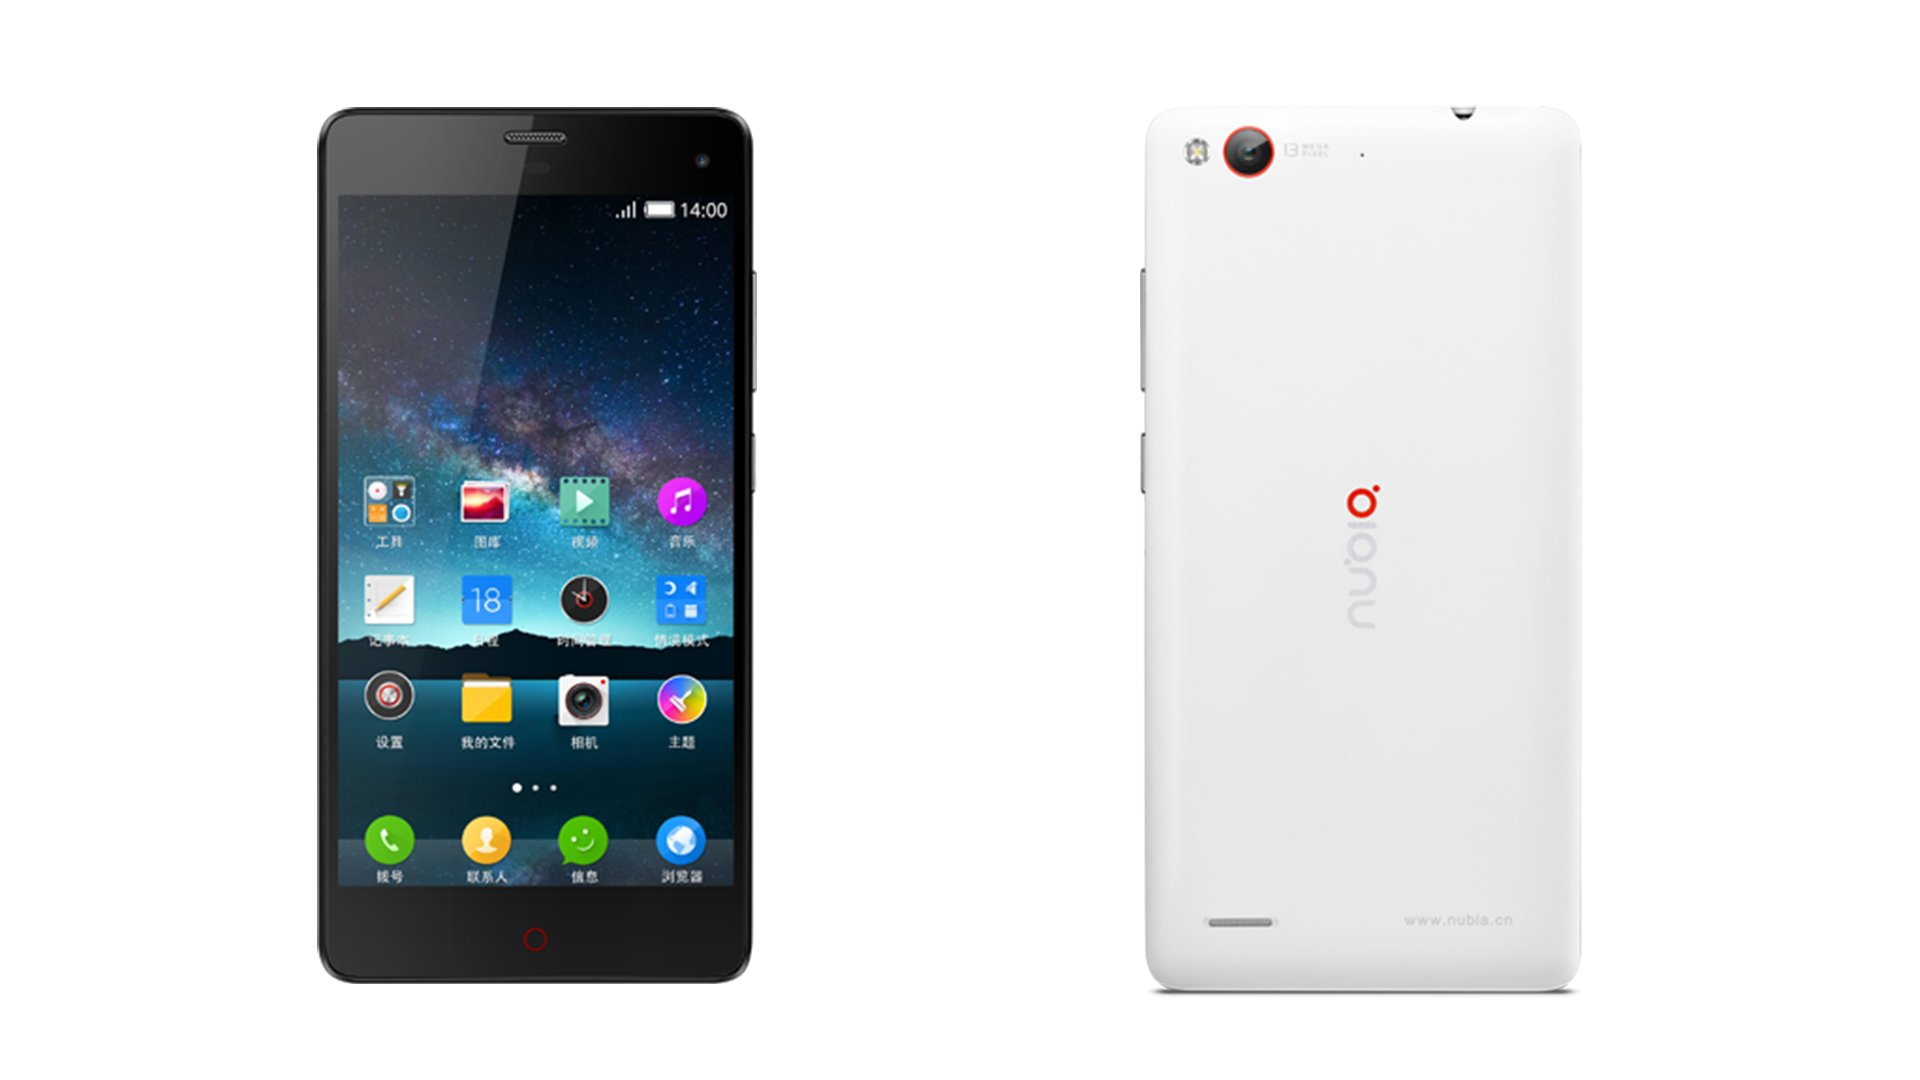 out zte nubia z7 antutu video playback, smooth